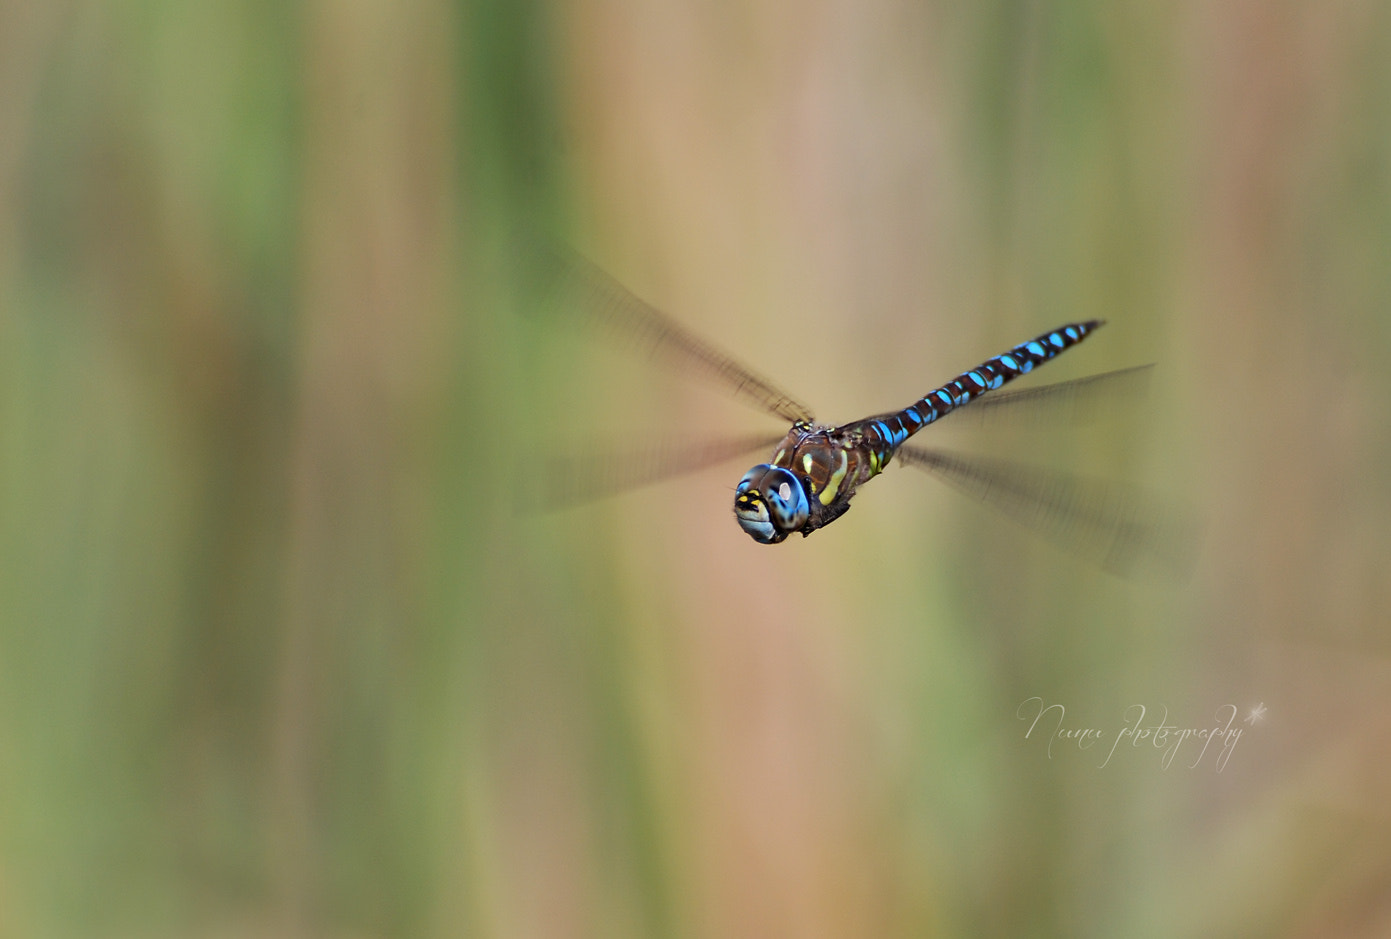 Photograph You can fly by Nunu Box on 500px